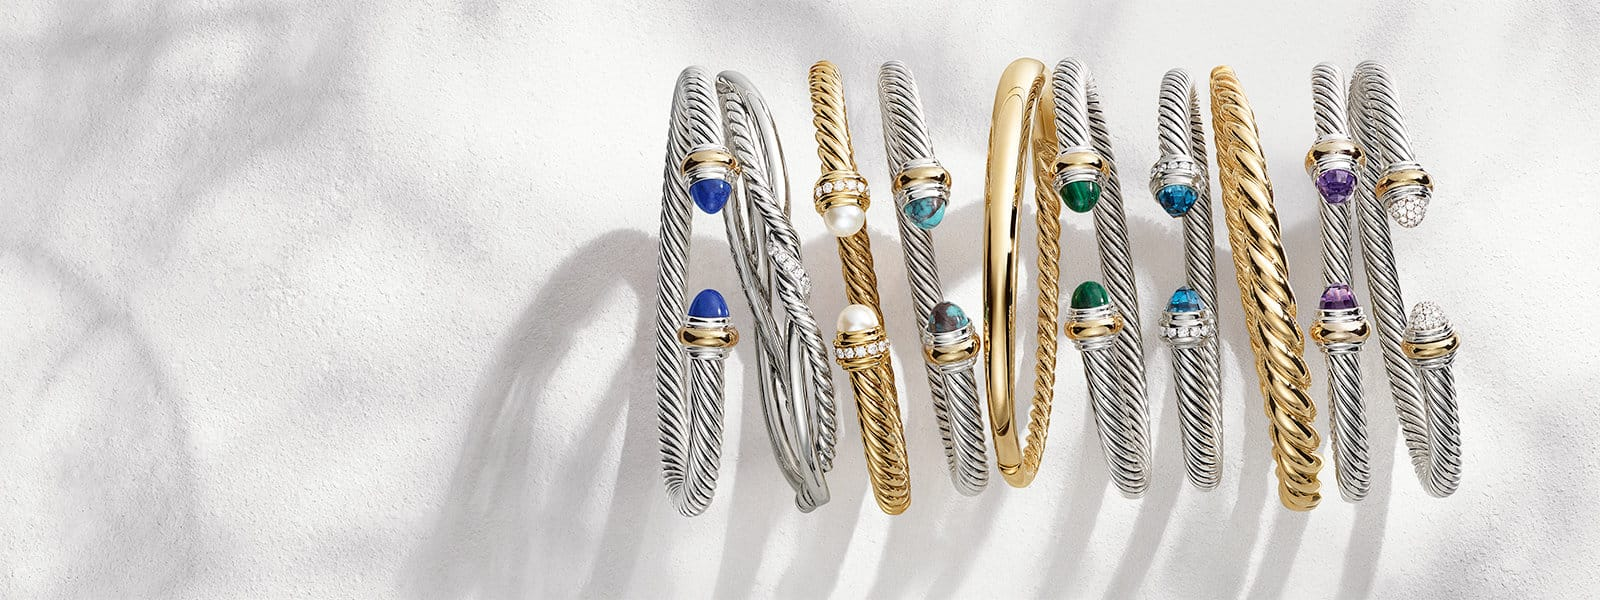 A horizontal stack of David Yurman The Cable Collection®, Continuance® and Pure Form® bracelets in sterling silver with or without diamonds, 18K yellow gold or colored gemstones on a white textured stone with long shadows.